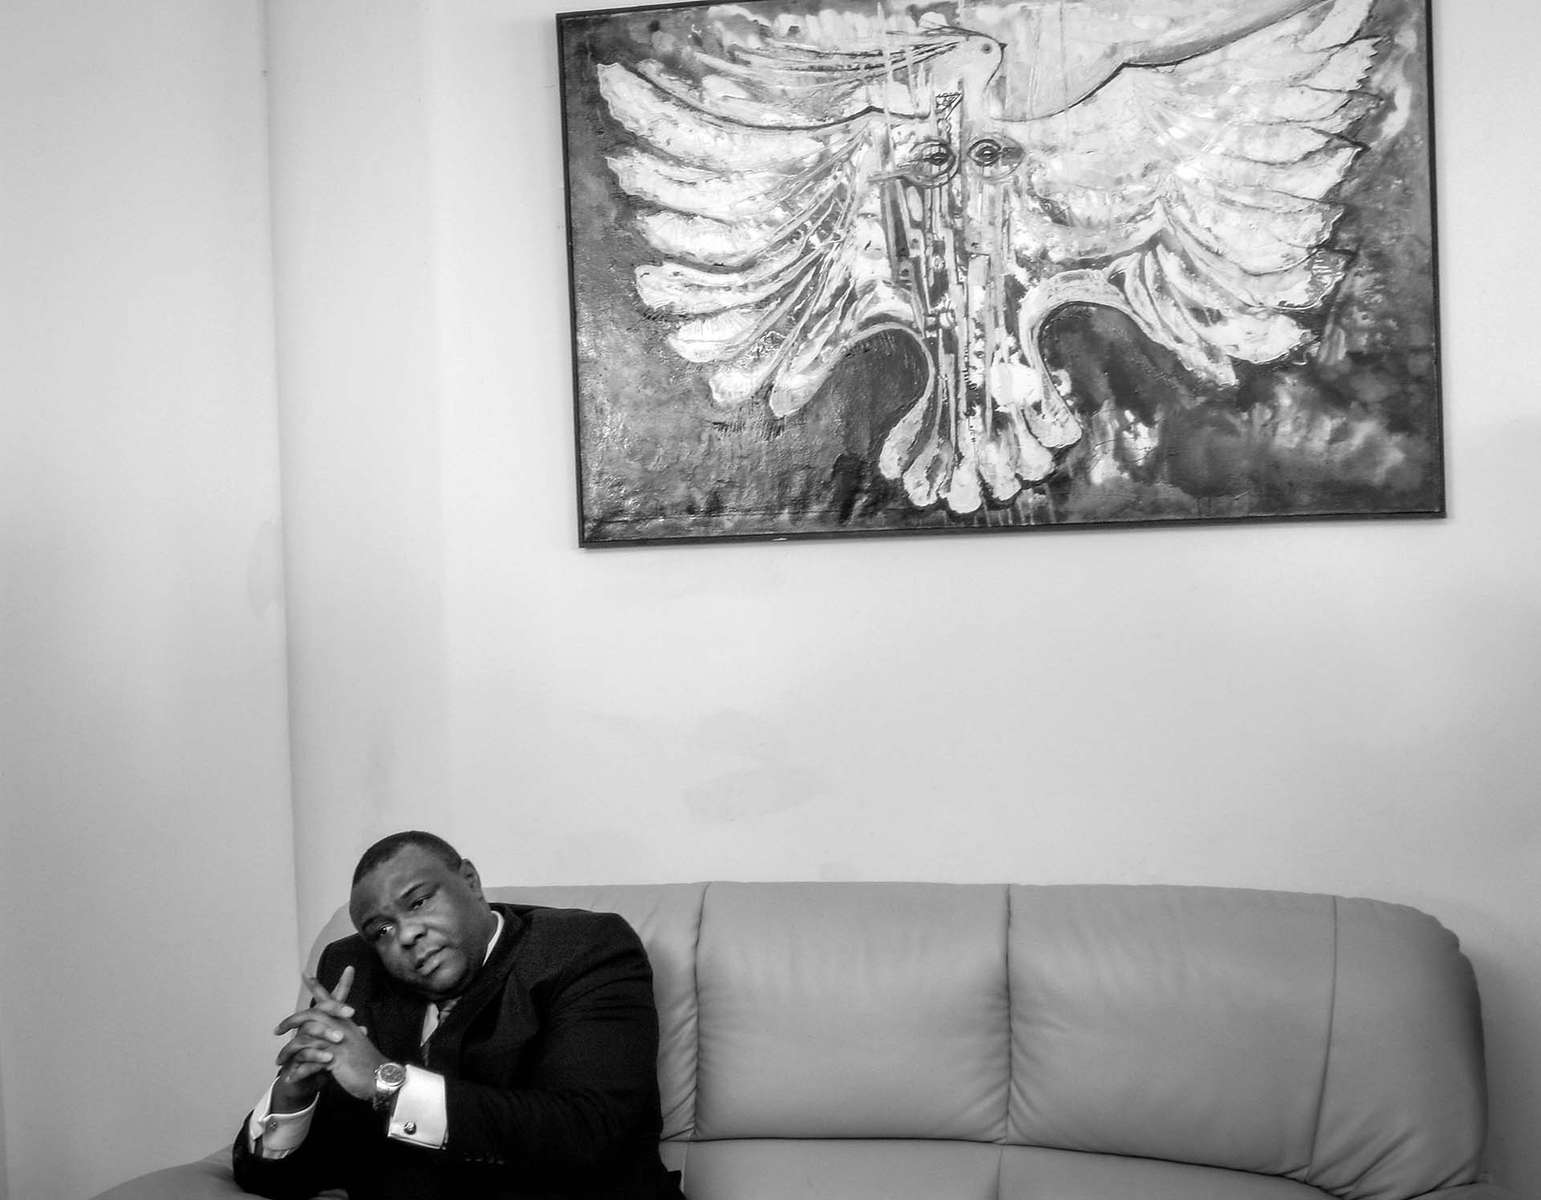 Jean Pierre Bemba, presidential candidate for the Democratic Republic of Congo, speaks to the press at his office in Kinshasa Thursday October 26, 2006.